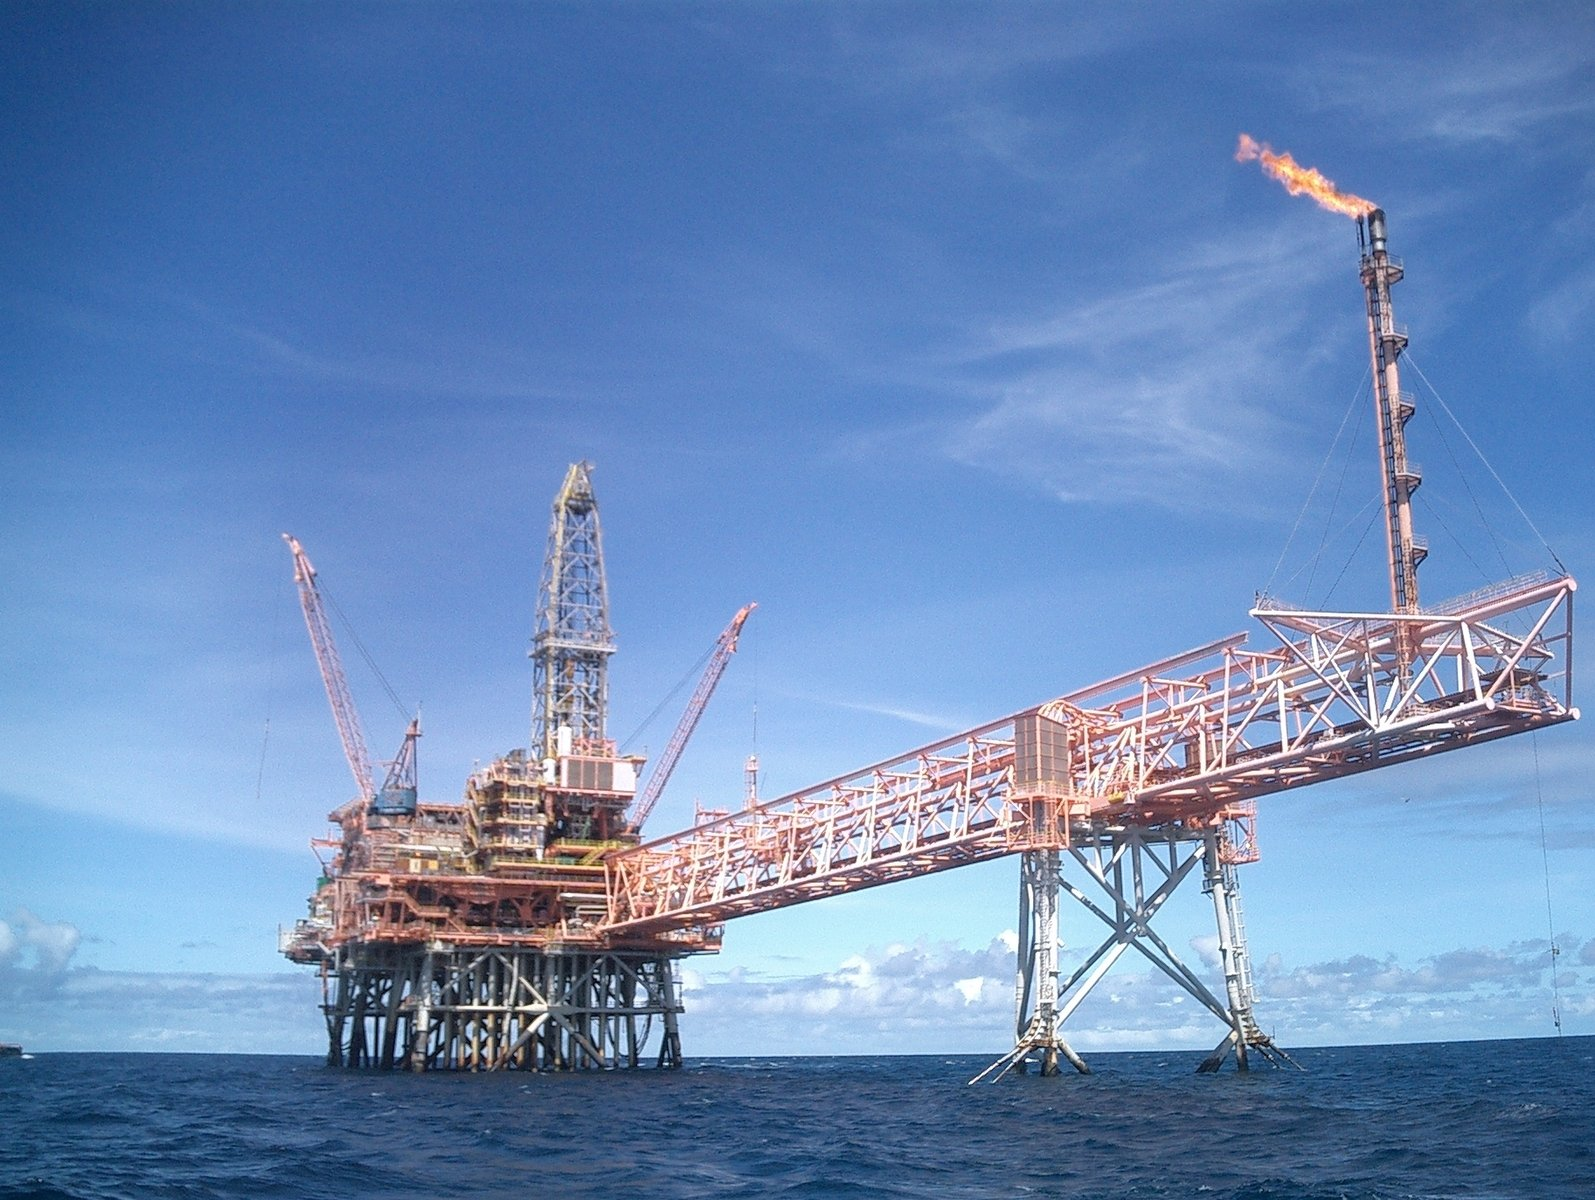 Recovery projects key to unlocking oil reserves in Norway, says analyst